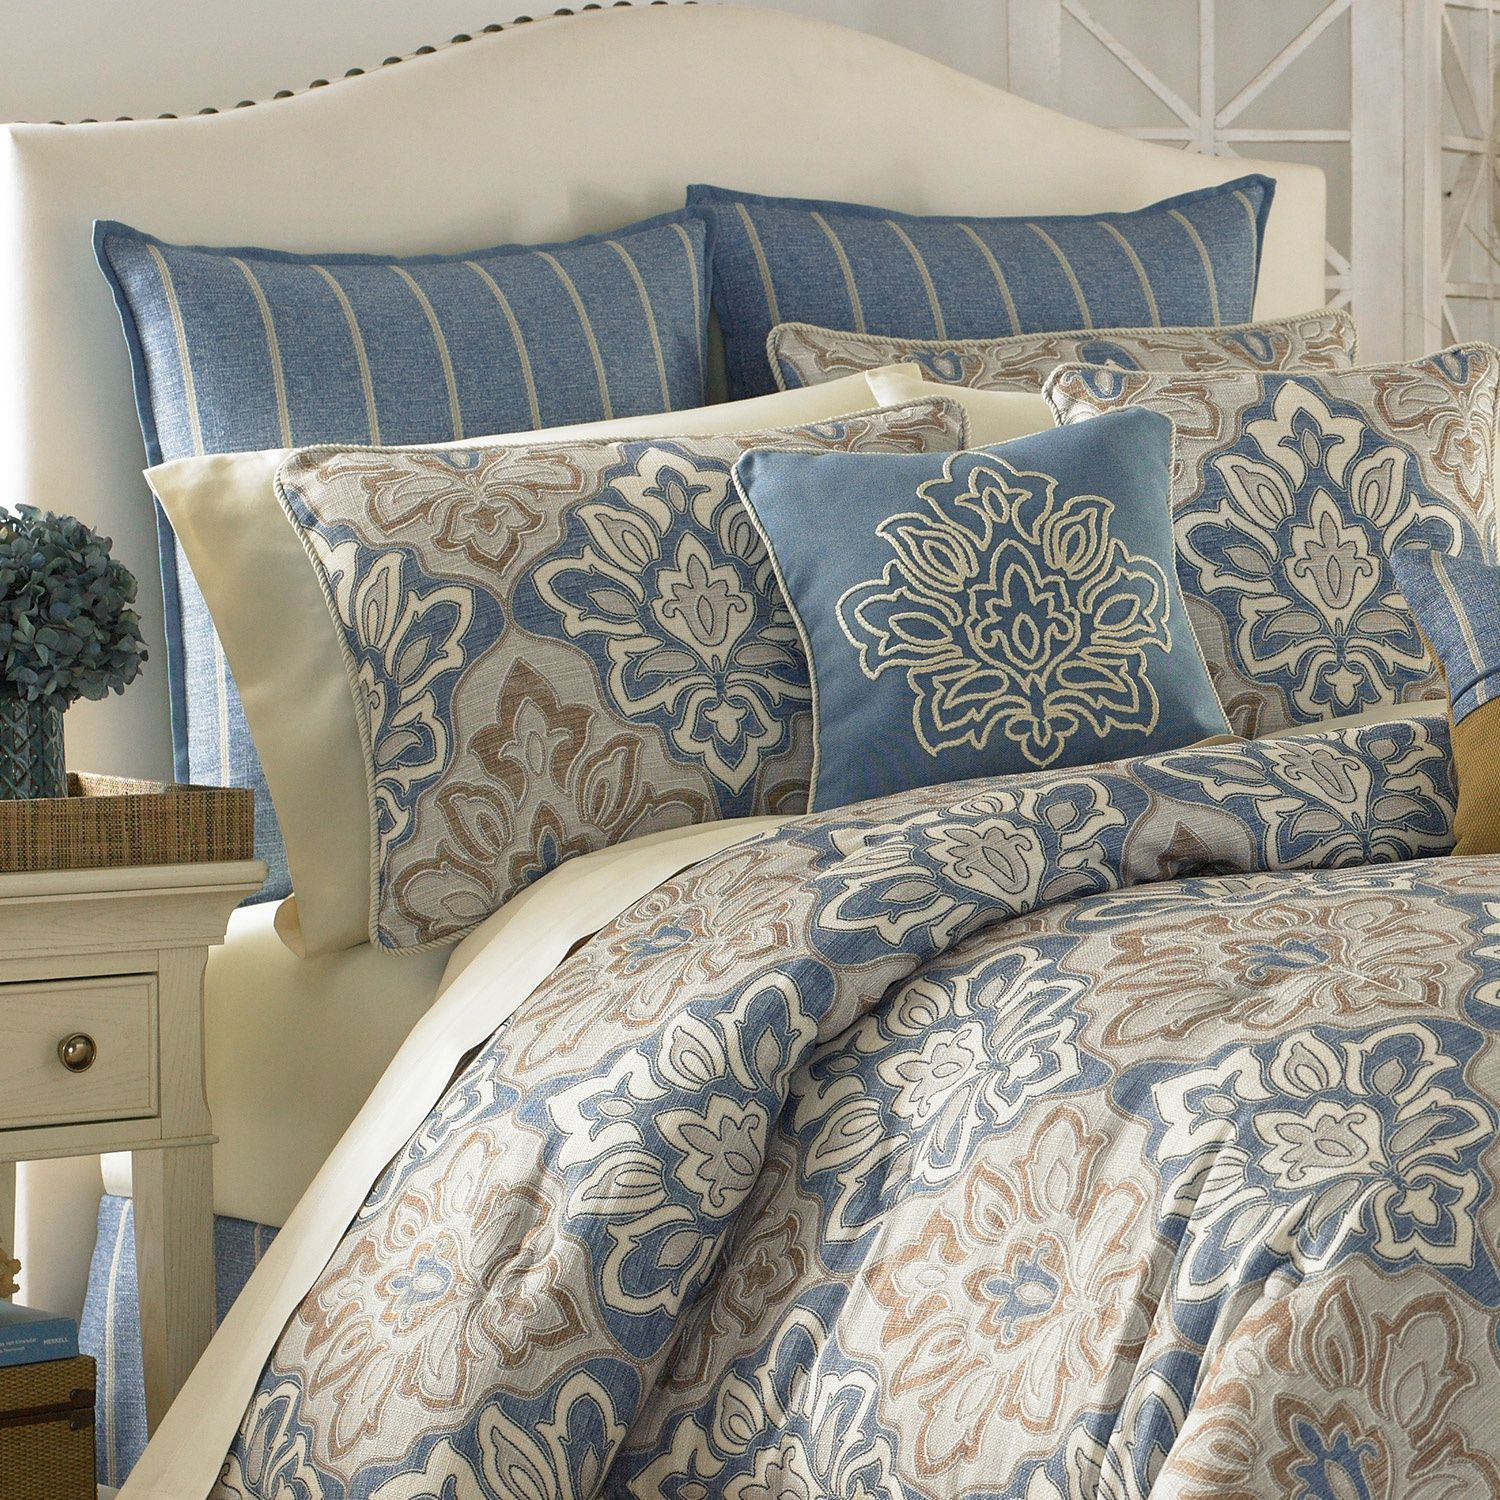 The Captain S Quarters Bedding Collection By Croscill Features A Distressed Print On A Textured Background In Shad Croscill Bedding Bedding Sets Comforter Sets